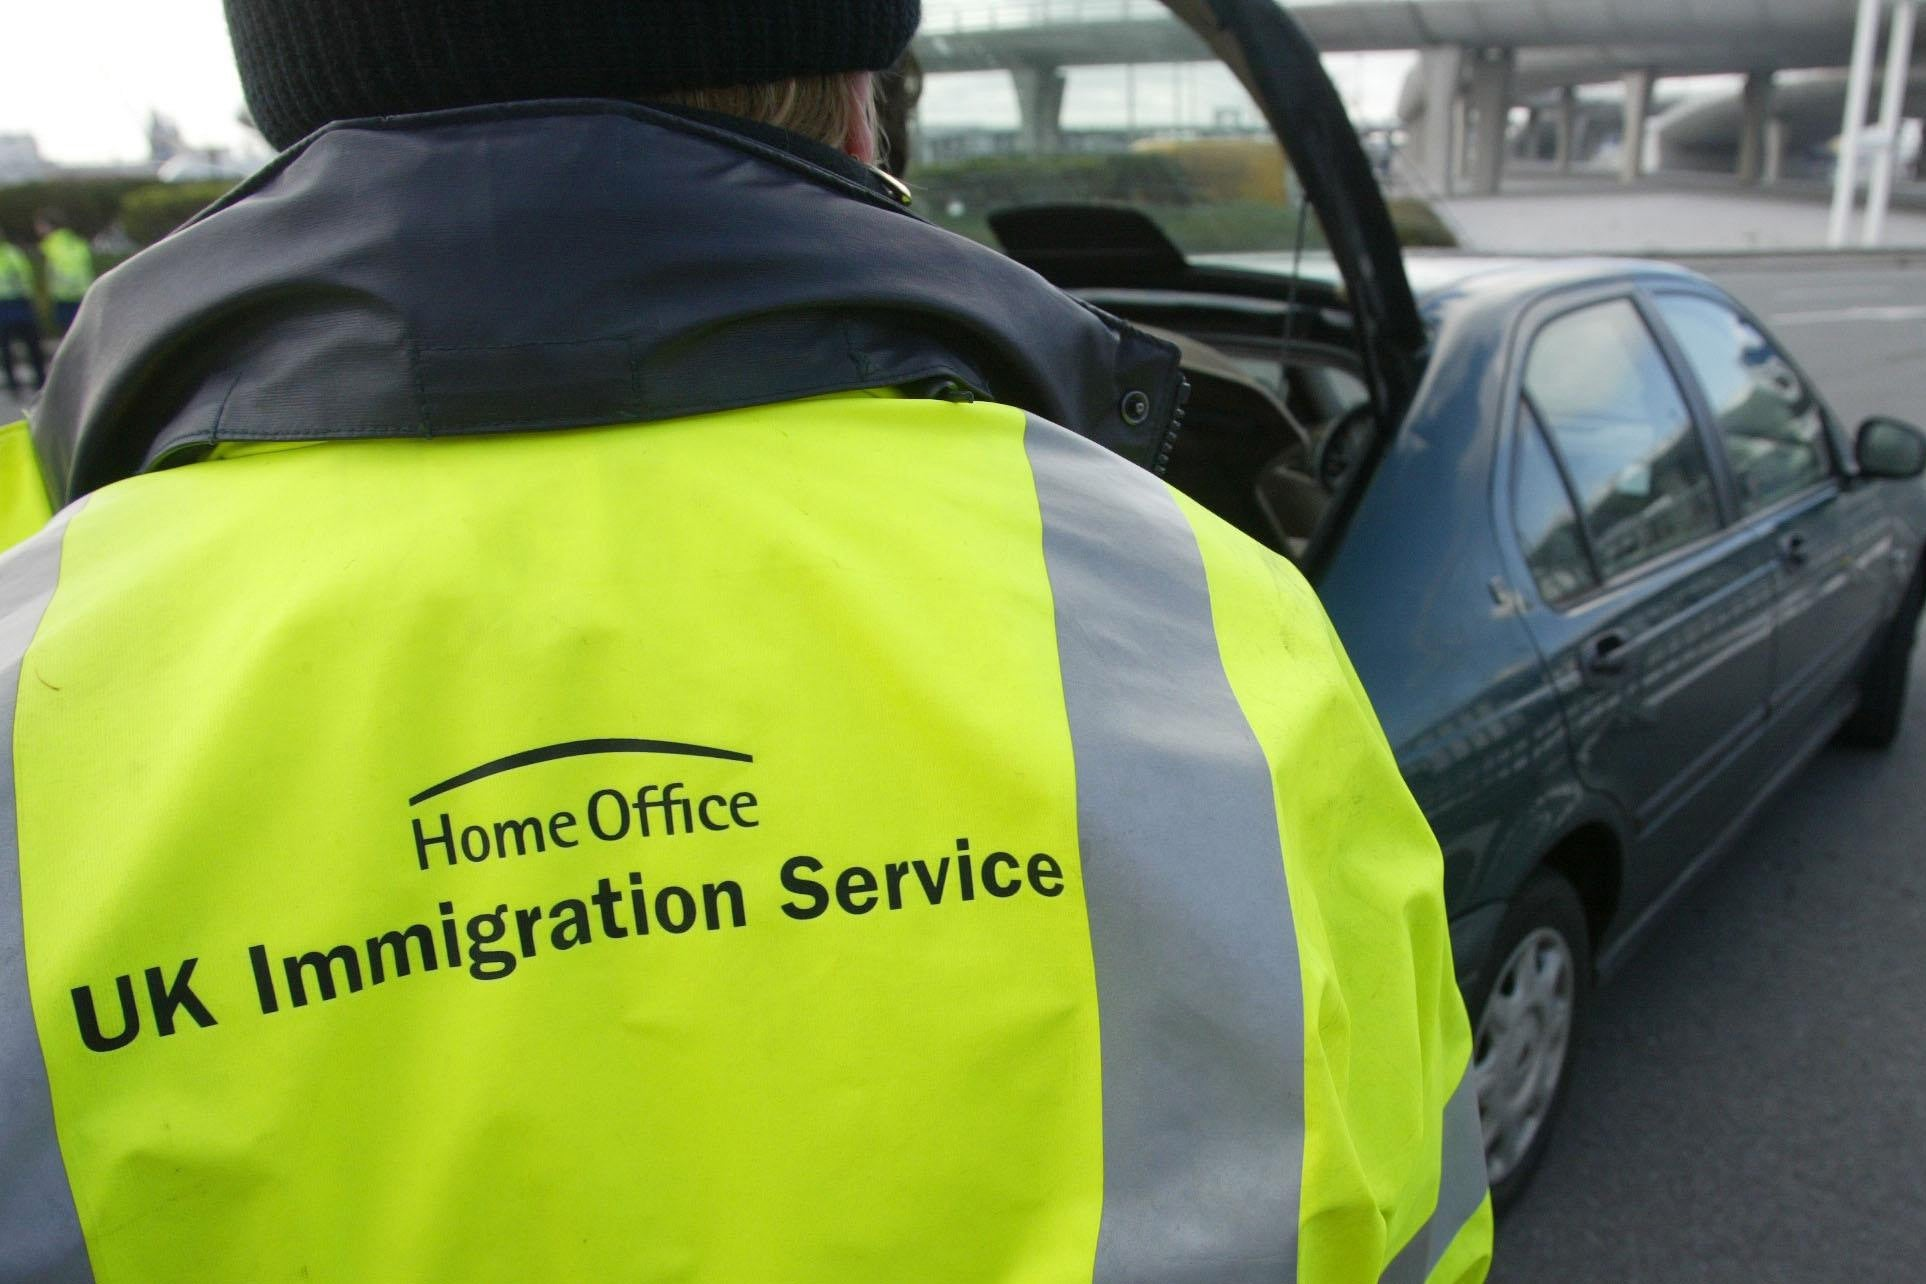 Immigration officers 'rewarded with cake for arresting most illegal immigrants', trade union claims